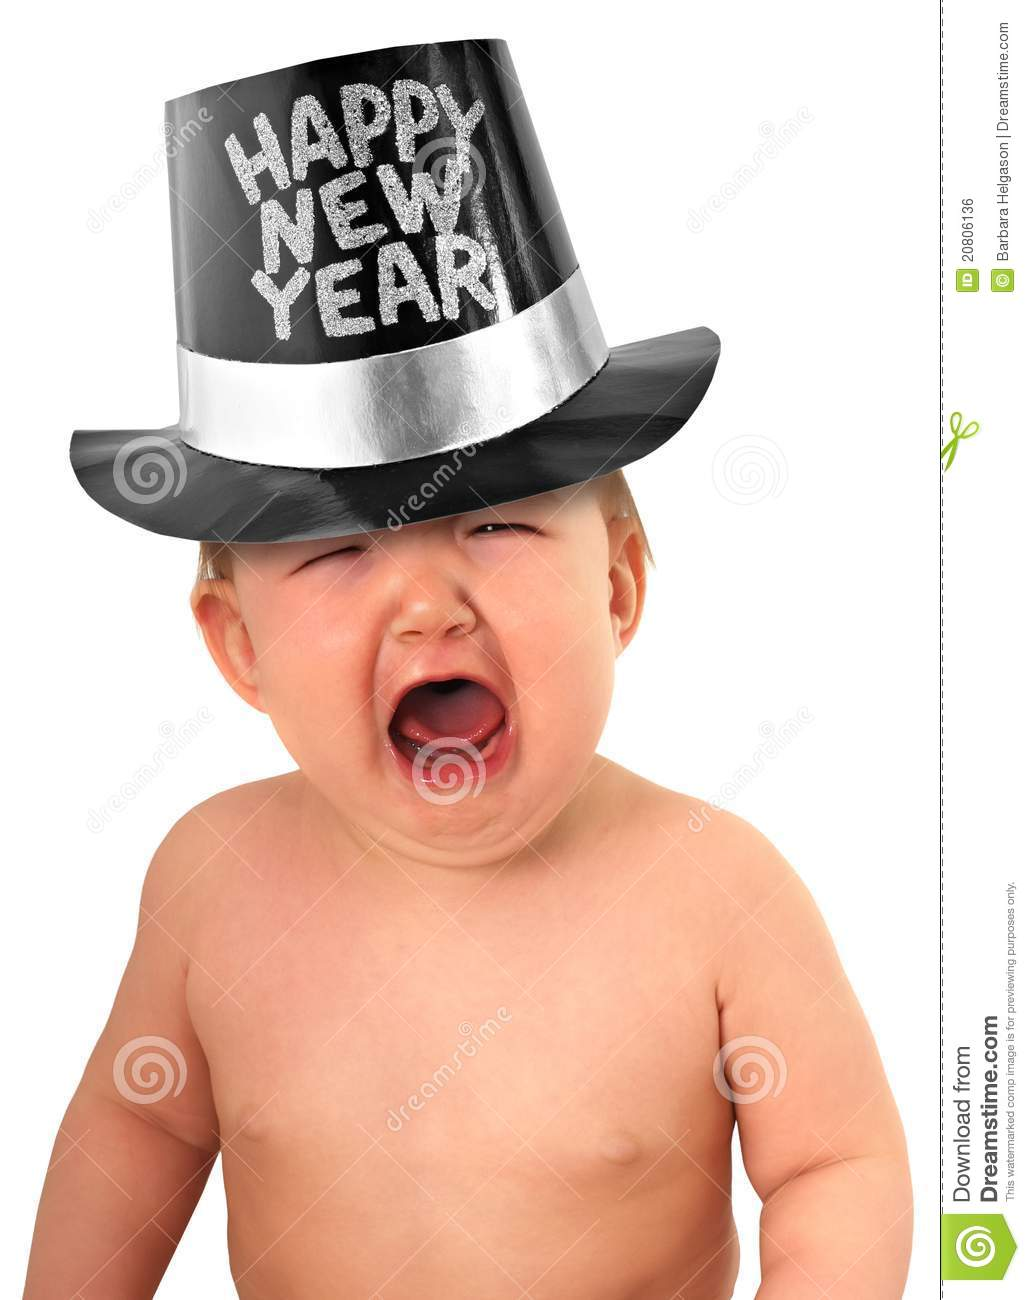 Happy new year baby - happy-new-year-baby-20806136